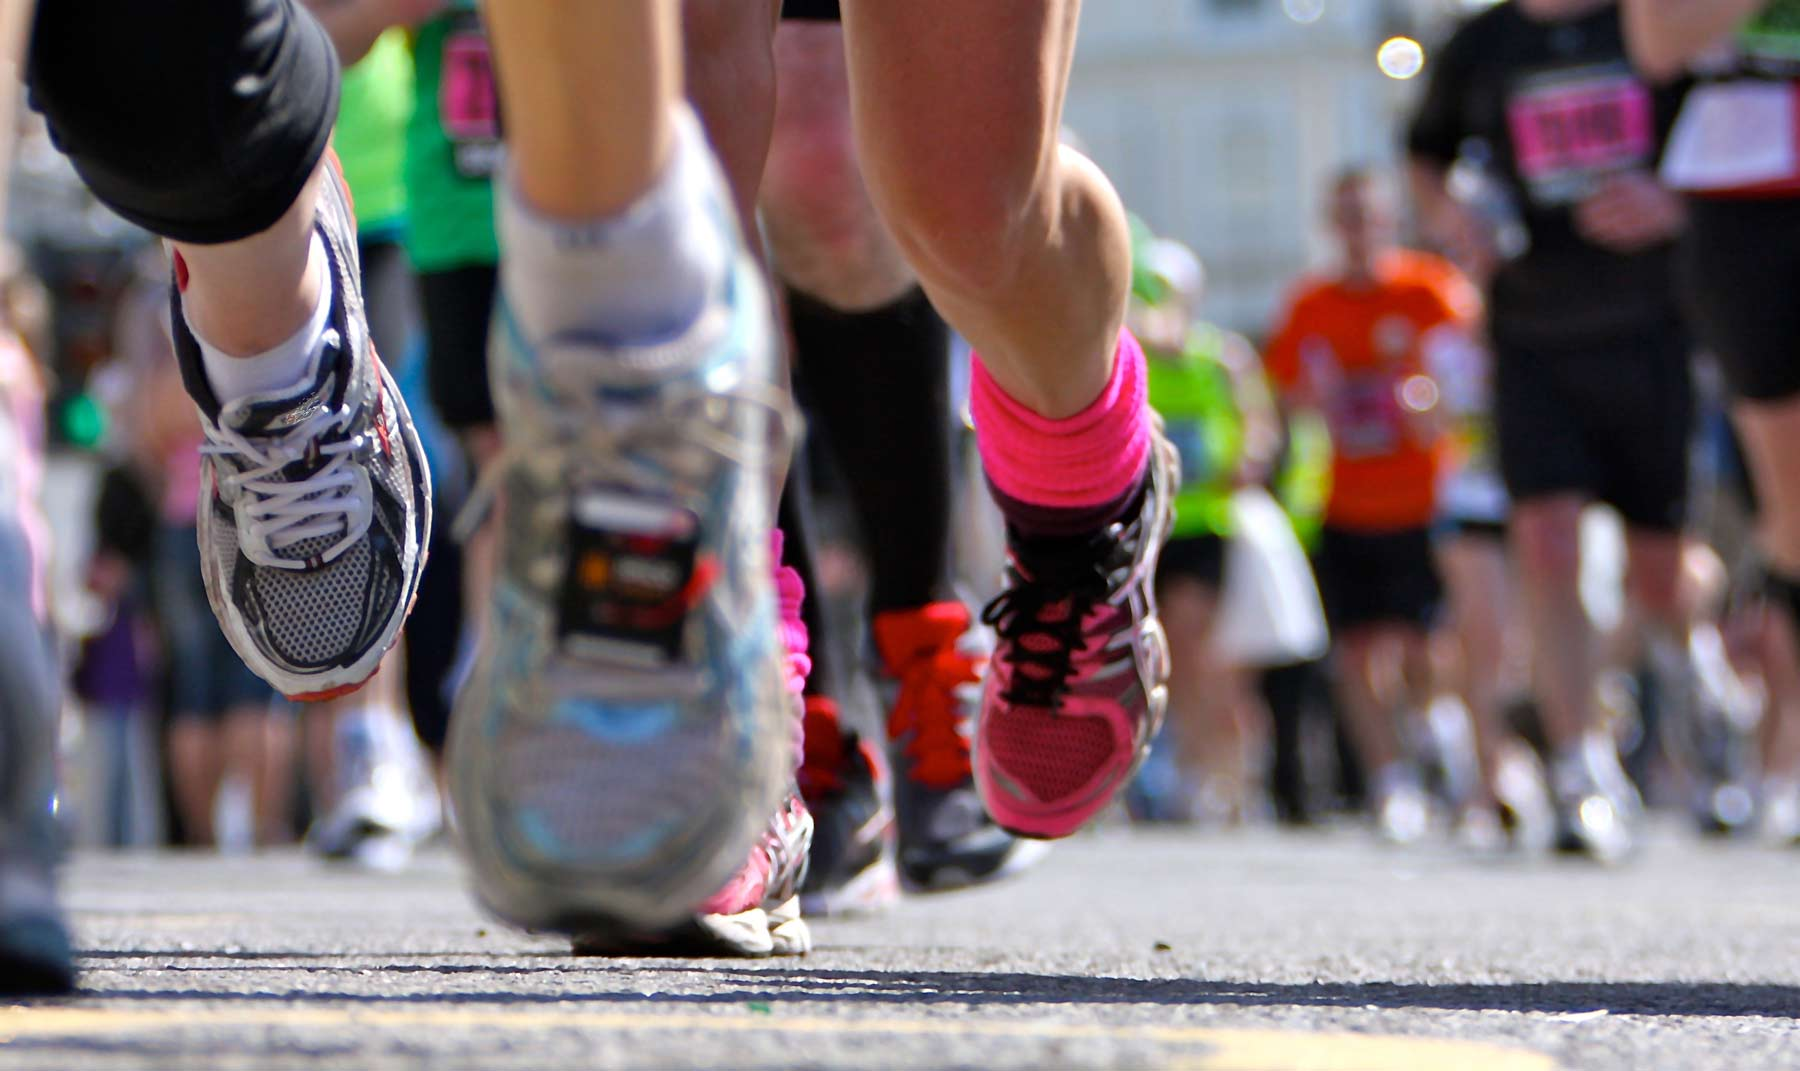 Close up of runner's shoes during a marathon